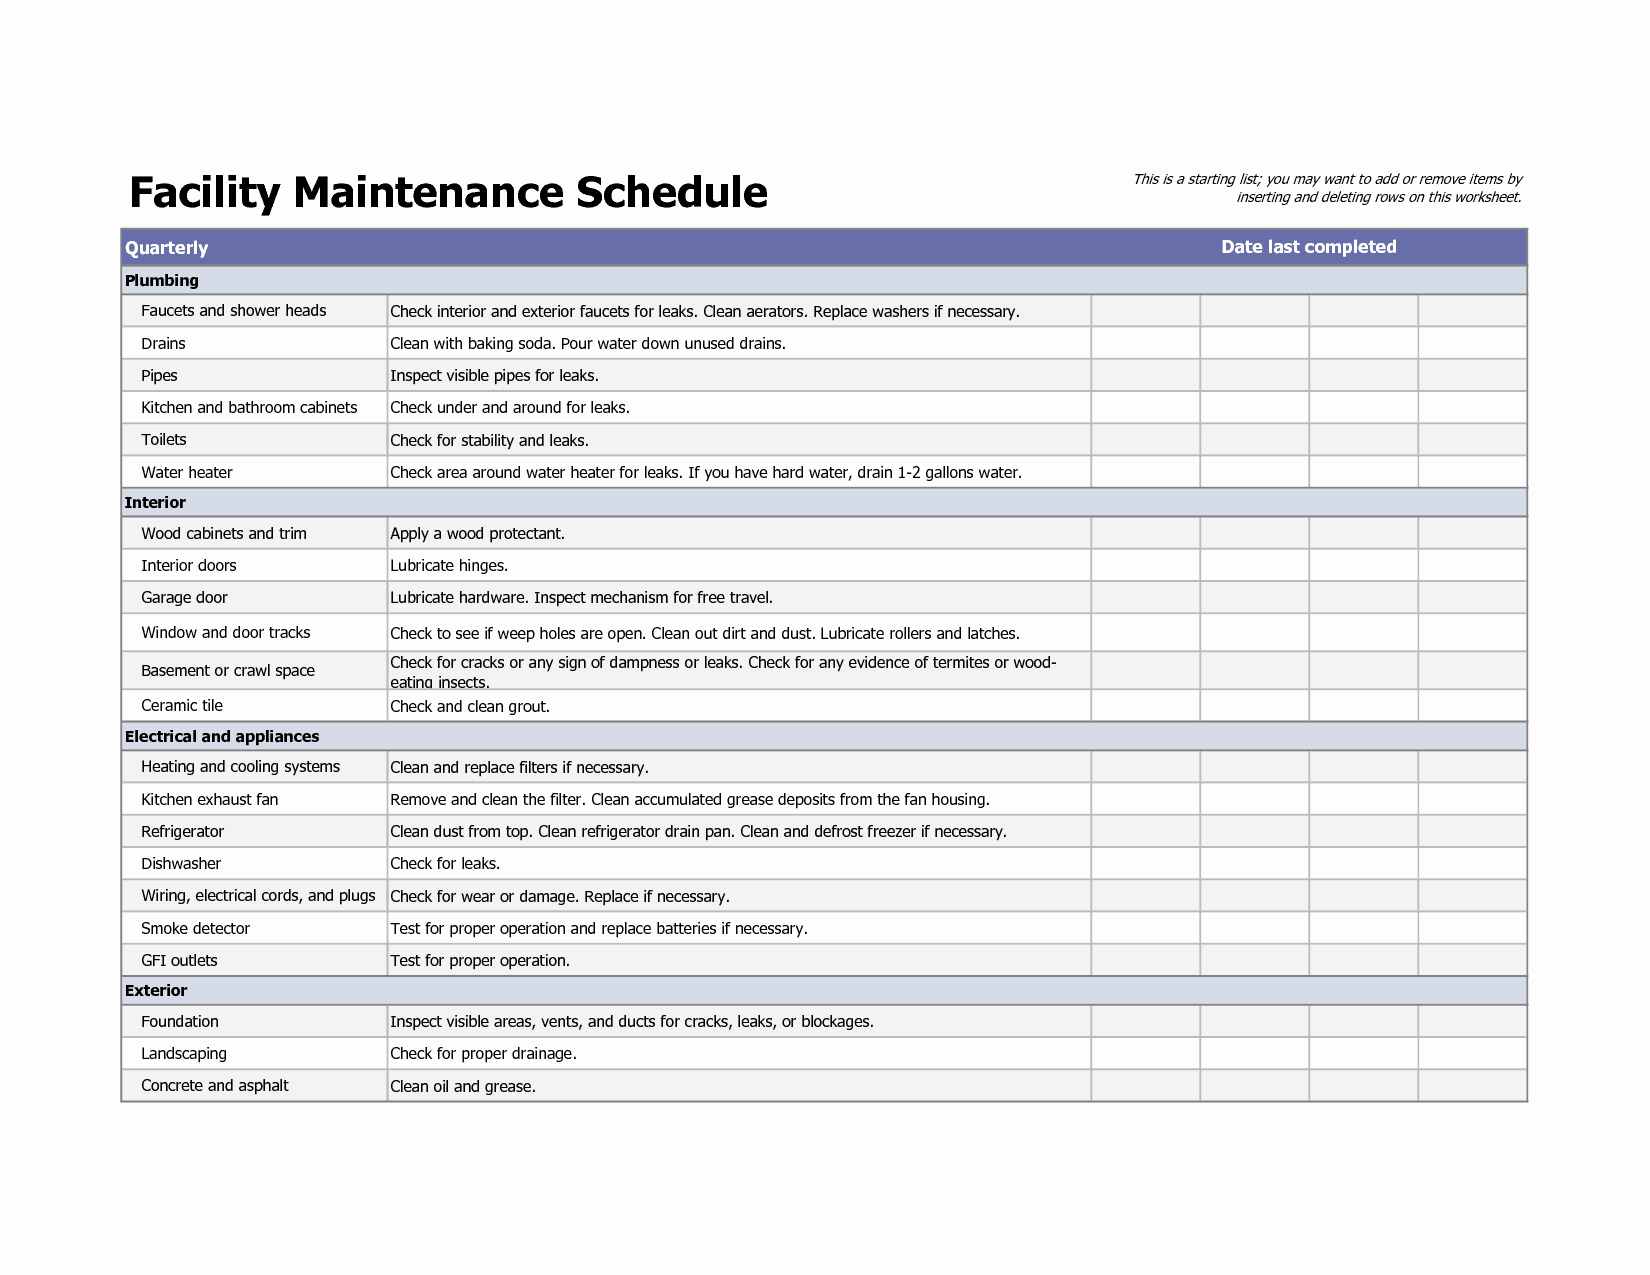 Facility Maintenance Plan Template Elegant 4 Facility Maintenance Checklist Templates Excel Xlts